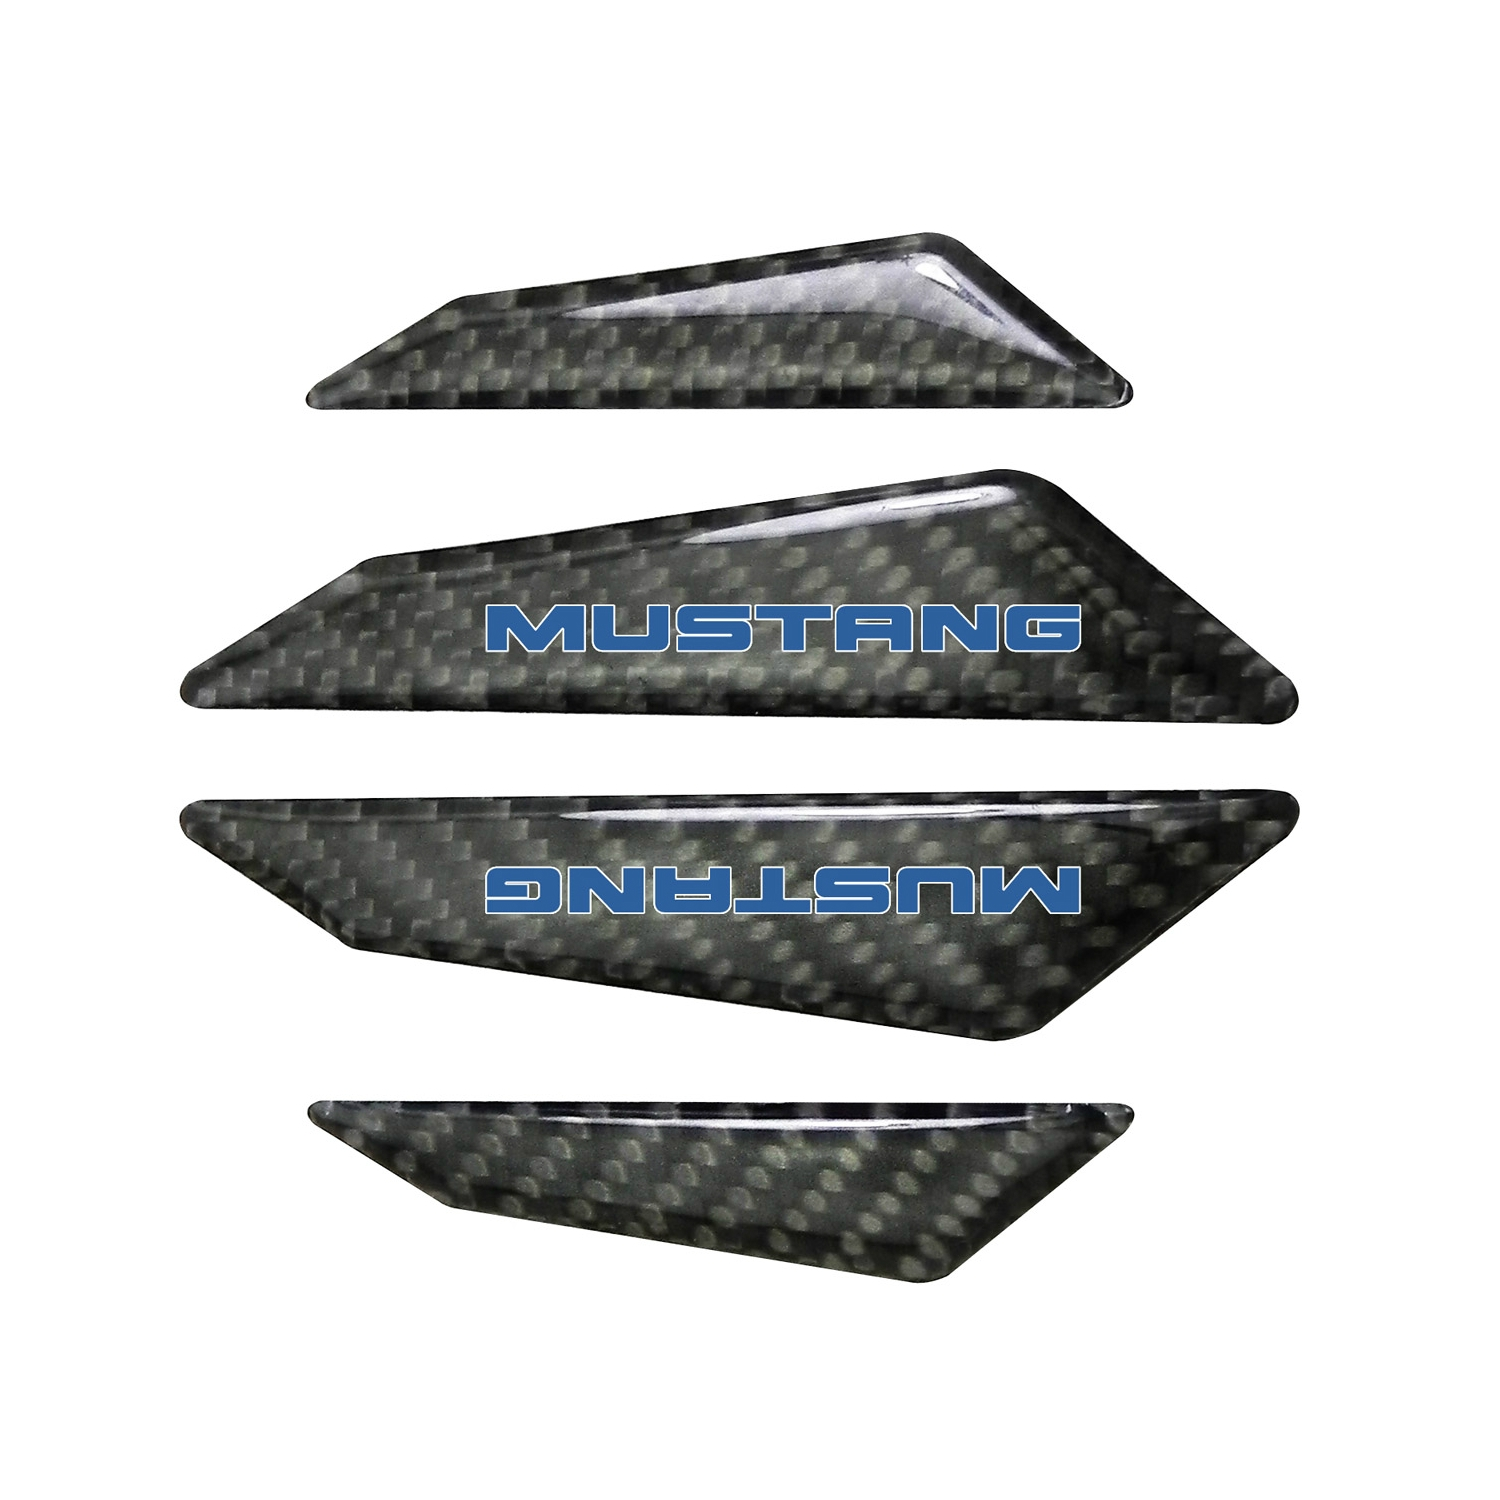 Ford Mustang in Blue Real Black Carbon Fiber Door Edge Guard Decal